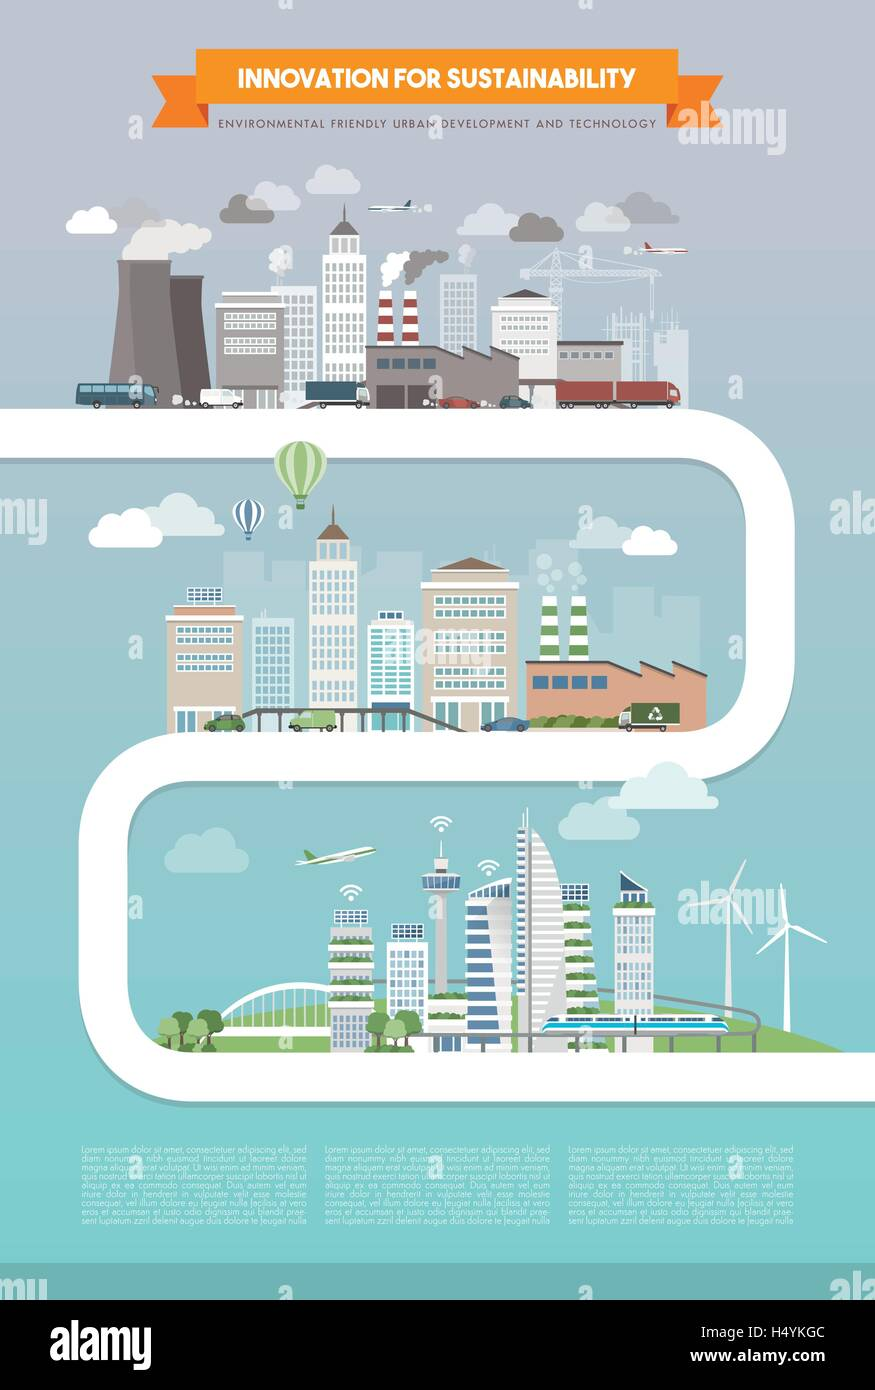 Innovation and sustainability for urban development, technology and power generation concept, city evolution path - Stock Image